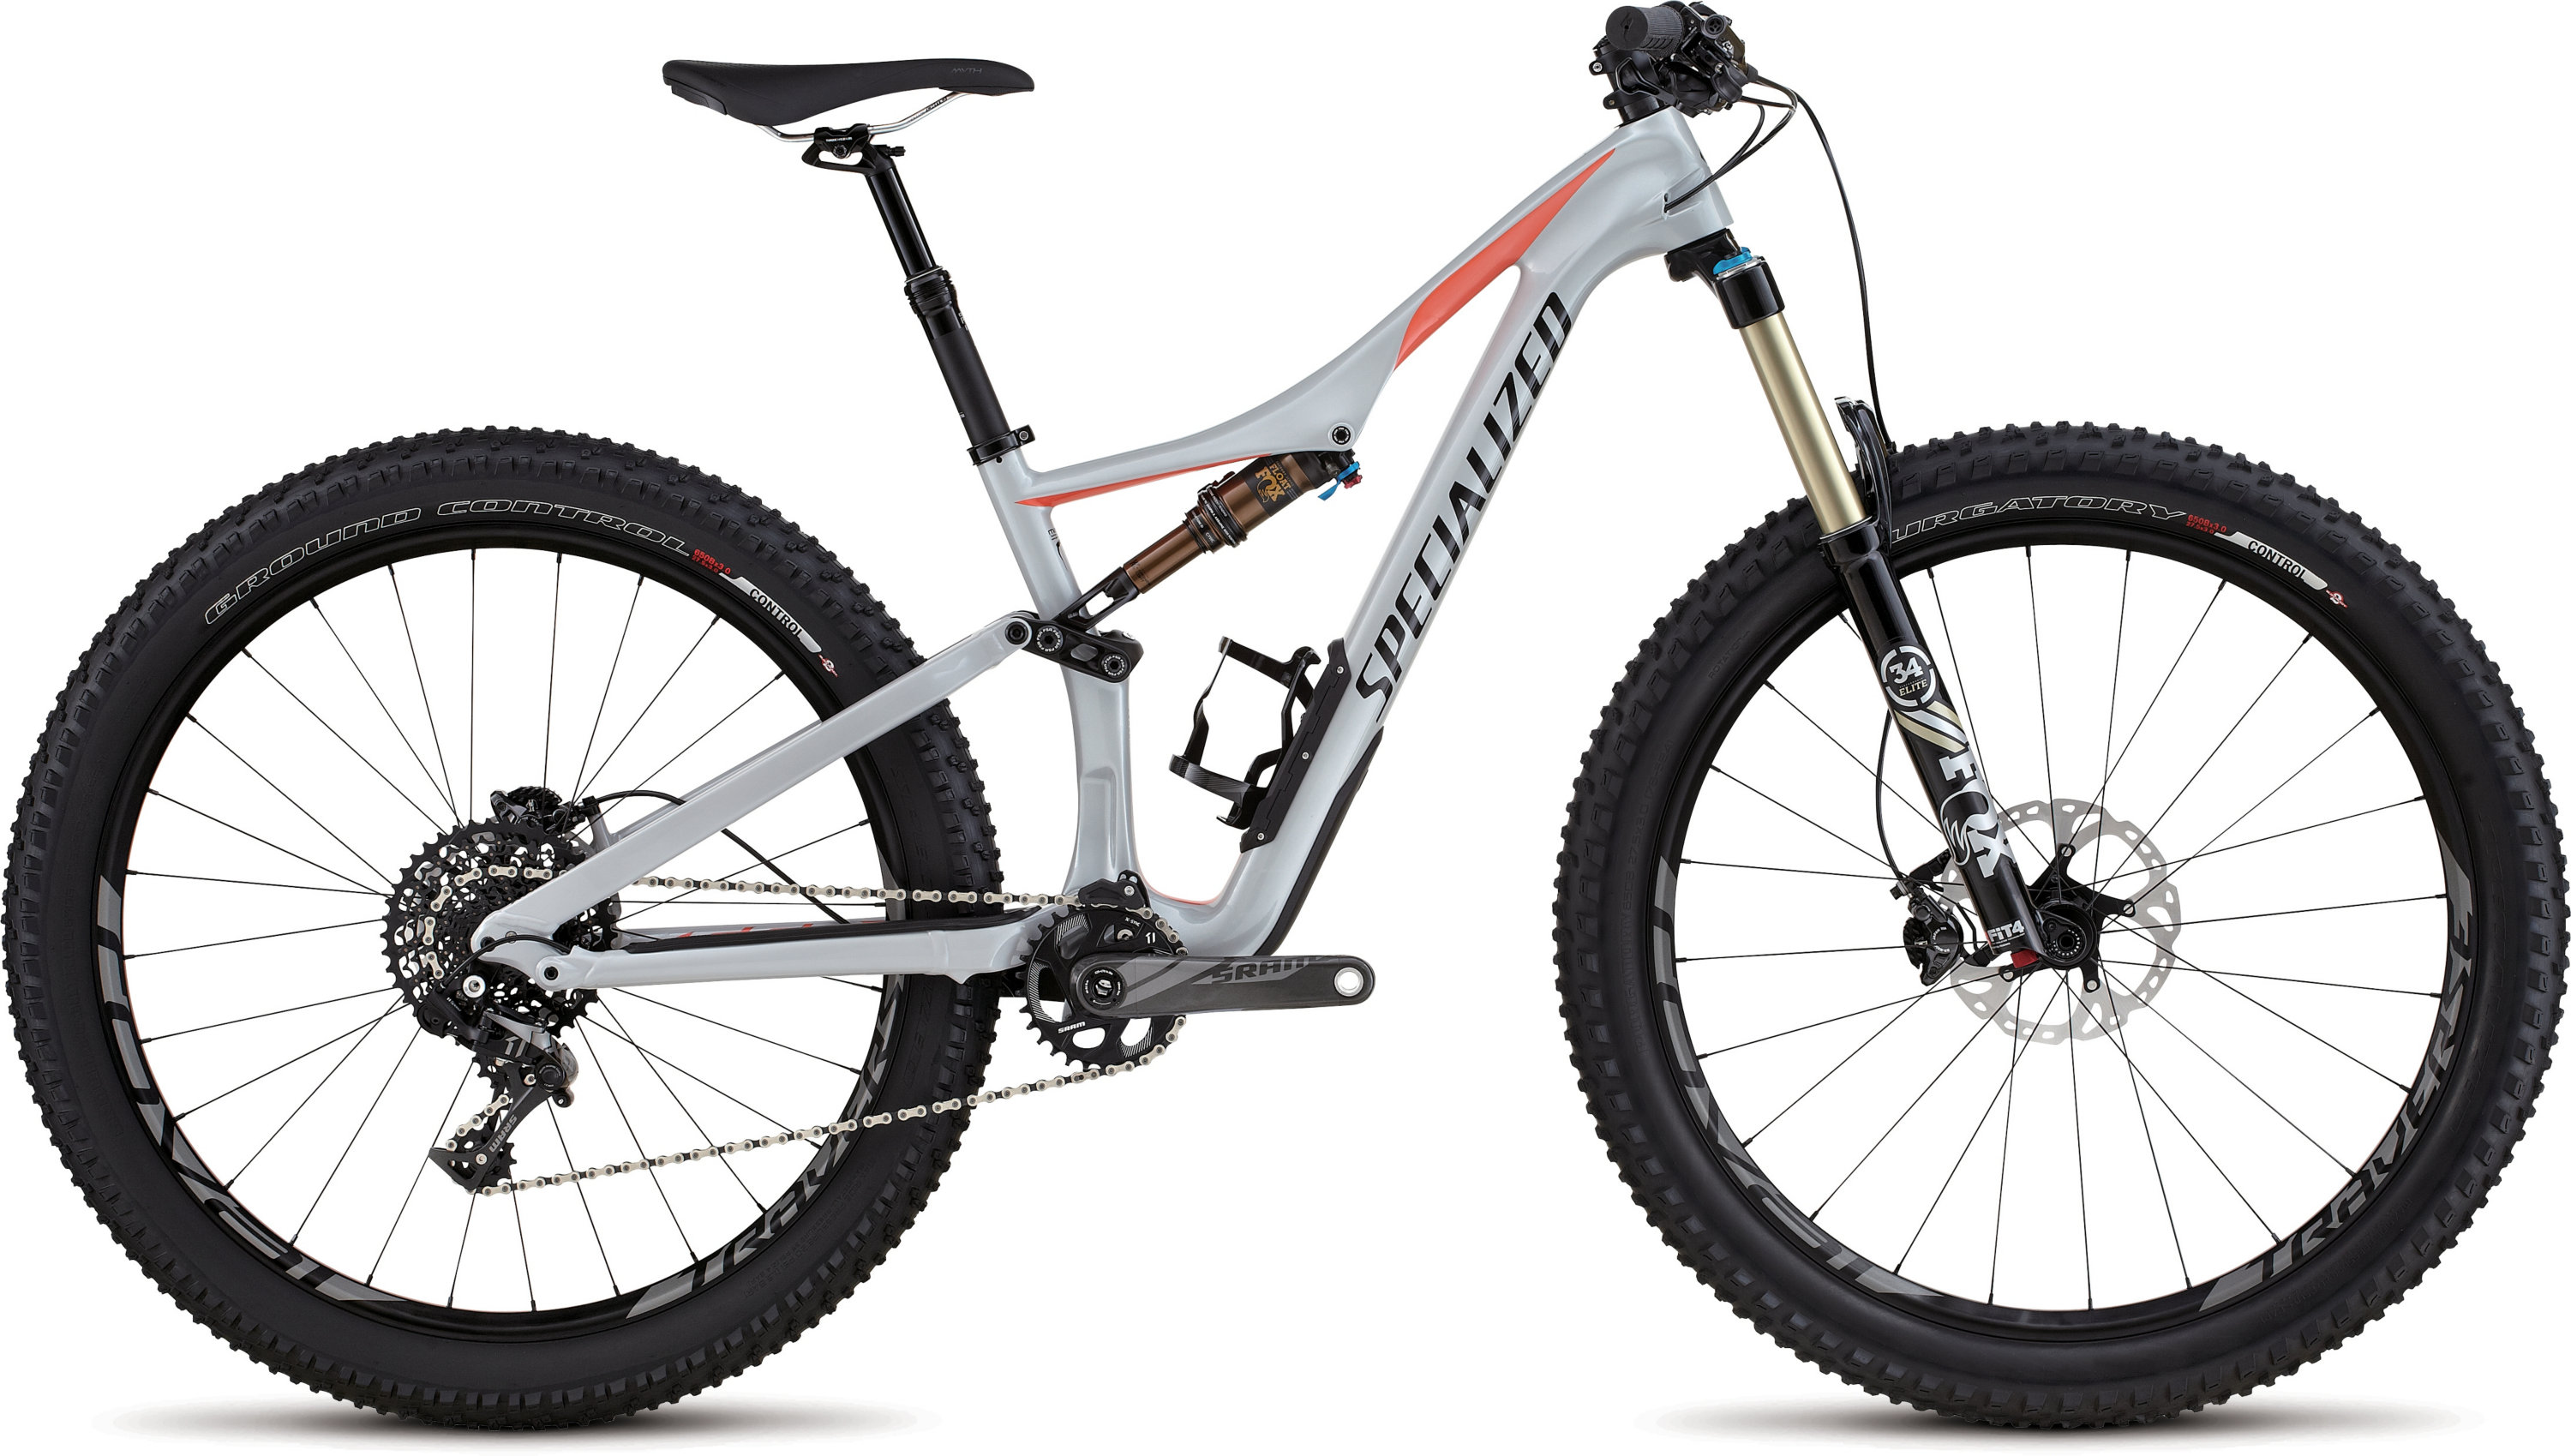 Specialized Rhyme FSR Expert Carbon 6Fattie Gloss Filthy White/Coral/Black S - Alpha Bikes